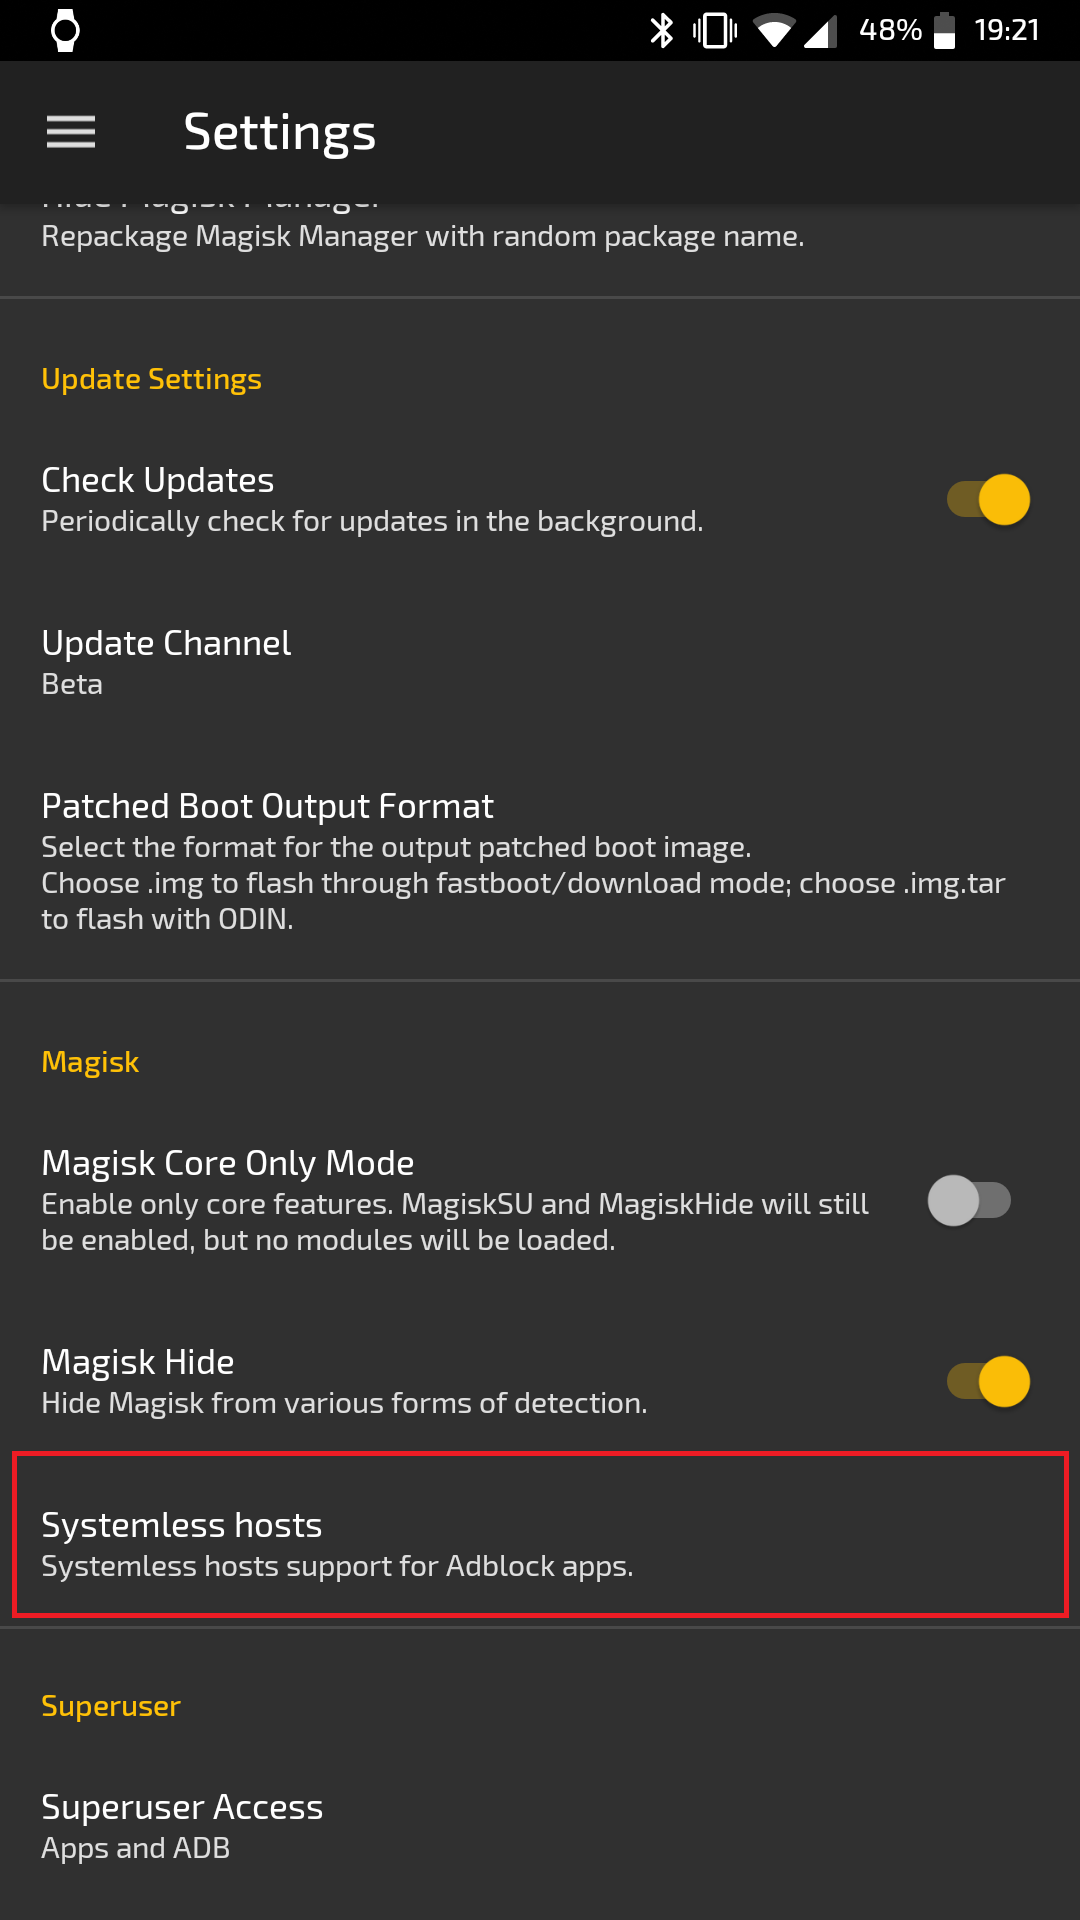 Click image for larger version  Name:Magisk18.0_NewSetting_SystemlessHostsFile_marked.png Views:132 Size:150.2 KB ID:4667905